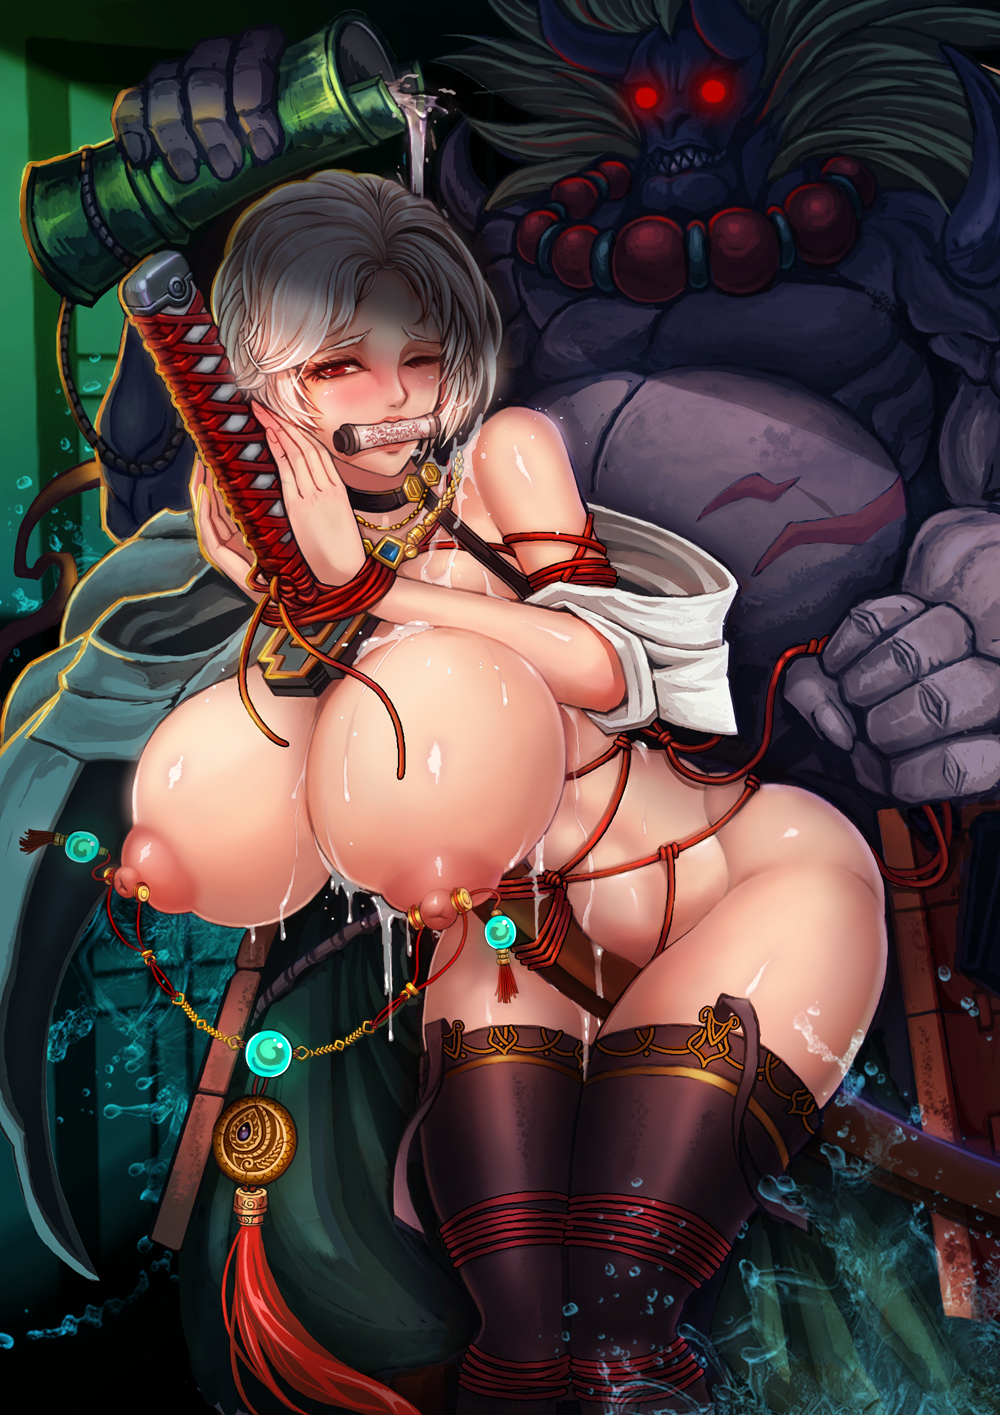 vanadis and marksman lord ludmila Gwen from ben ten naked